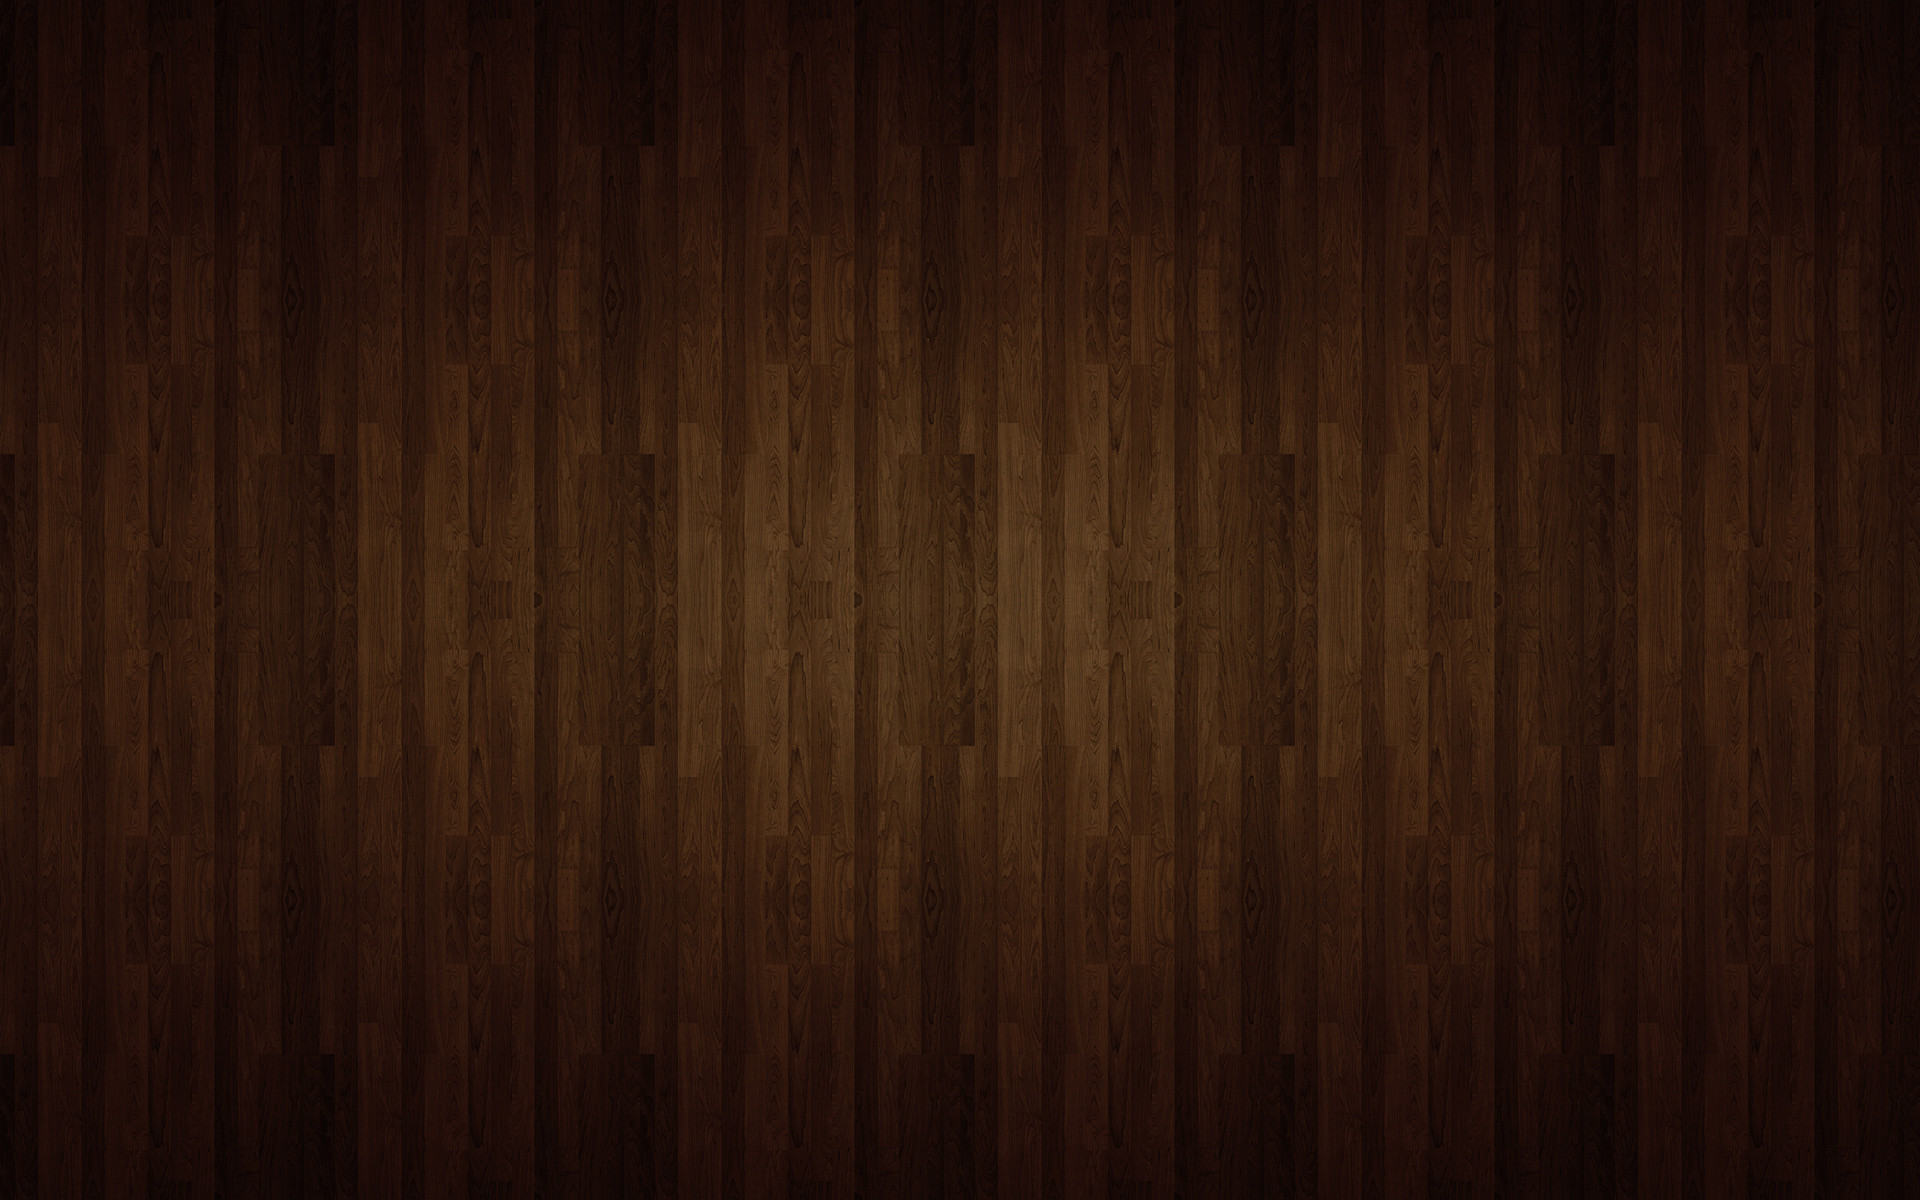 1920x1200 Wood texture wallpaper 34723. Hd Wood Background WallpaperSafari